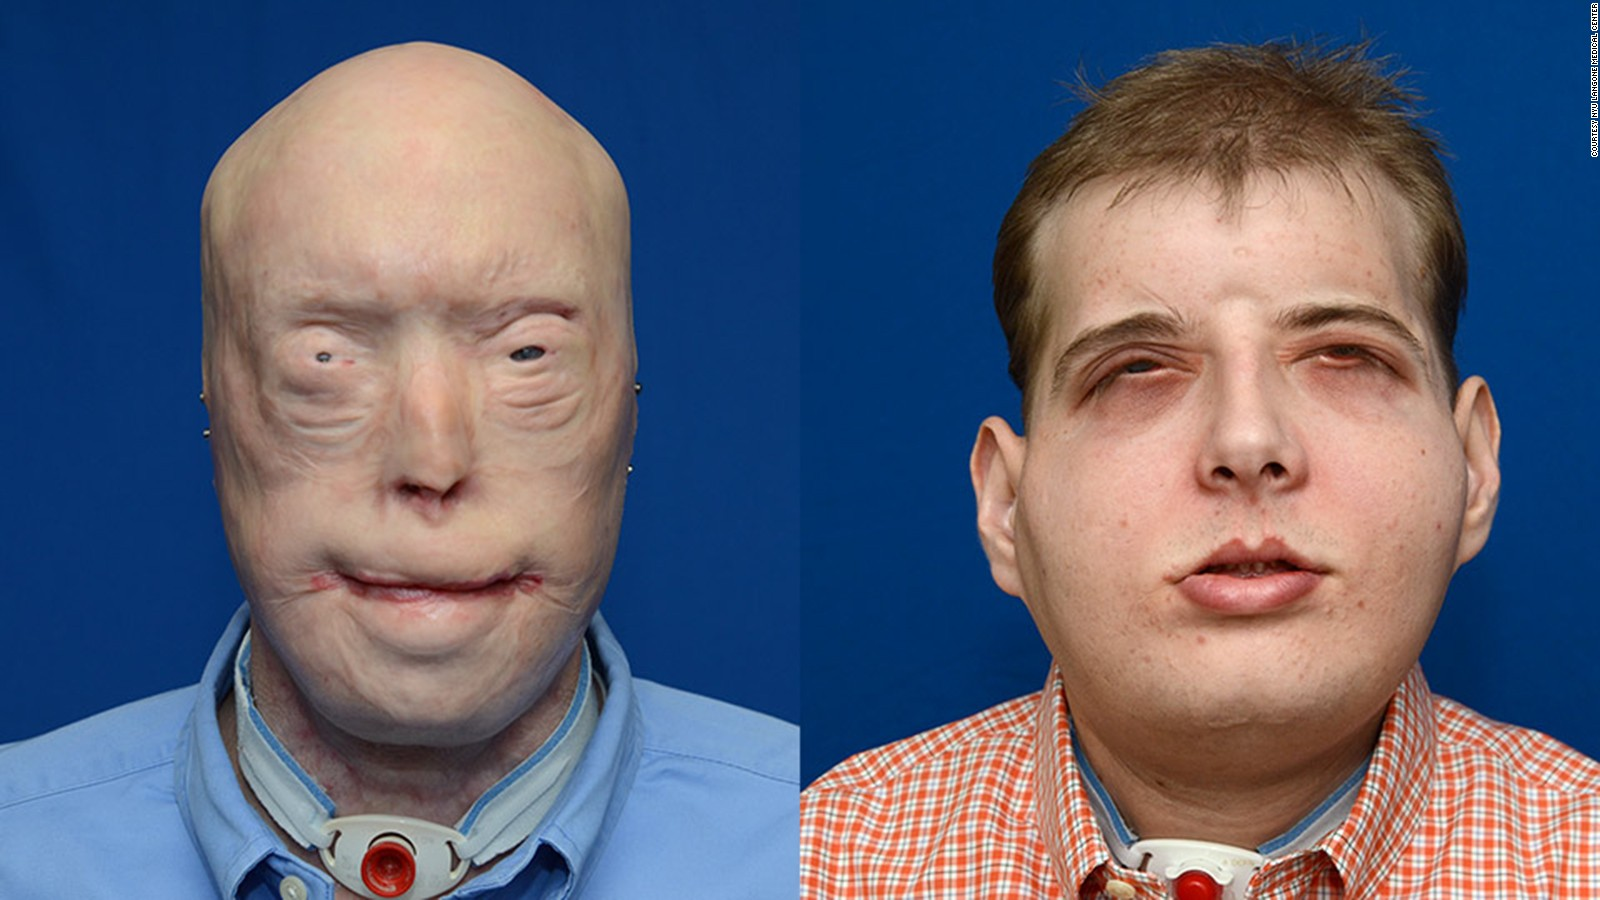 Pictures of facial transplants